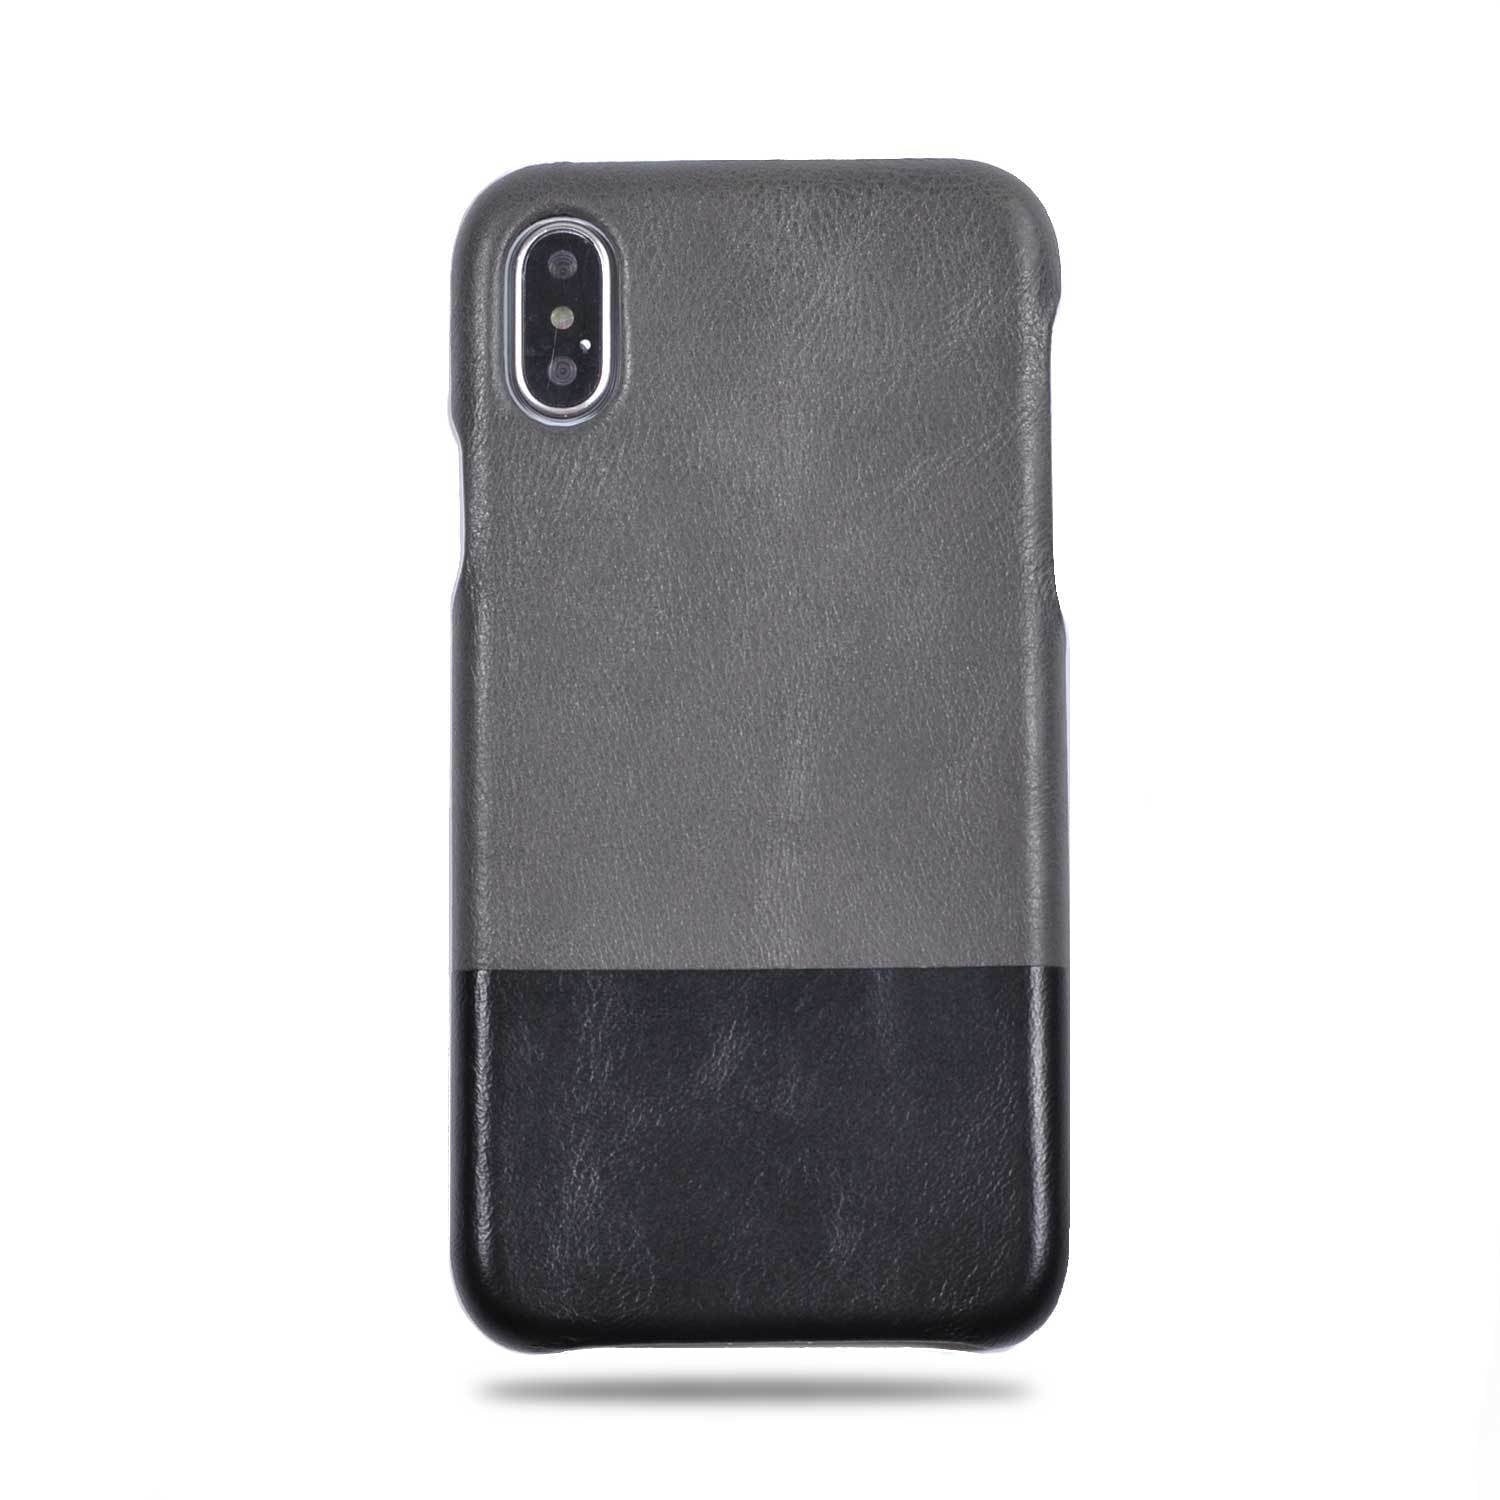 new style 5a933 8cd15 Fossil Gray & Crow Black iPhone Xs / iPhone X Leather Case